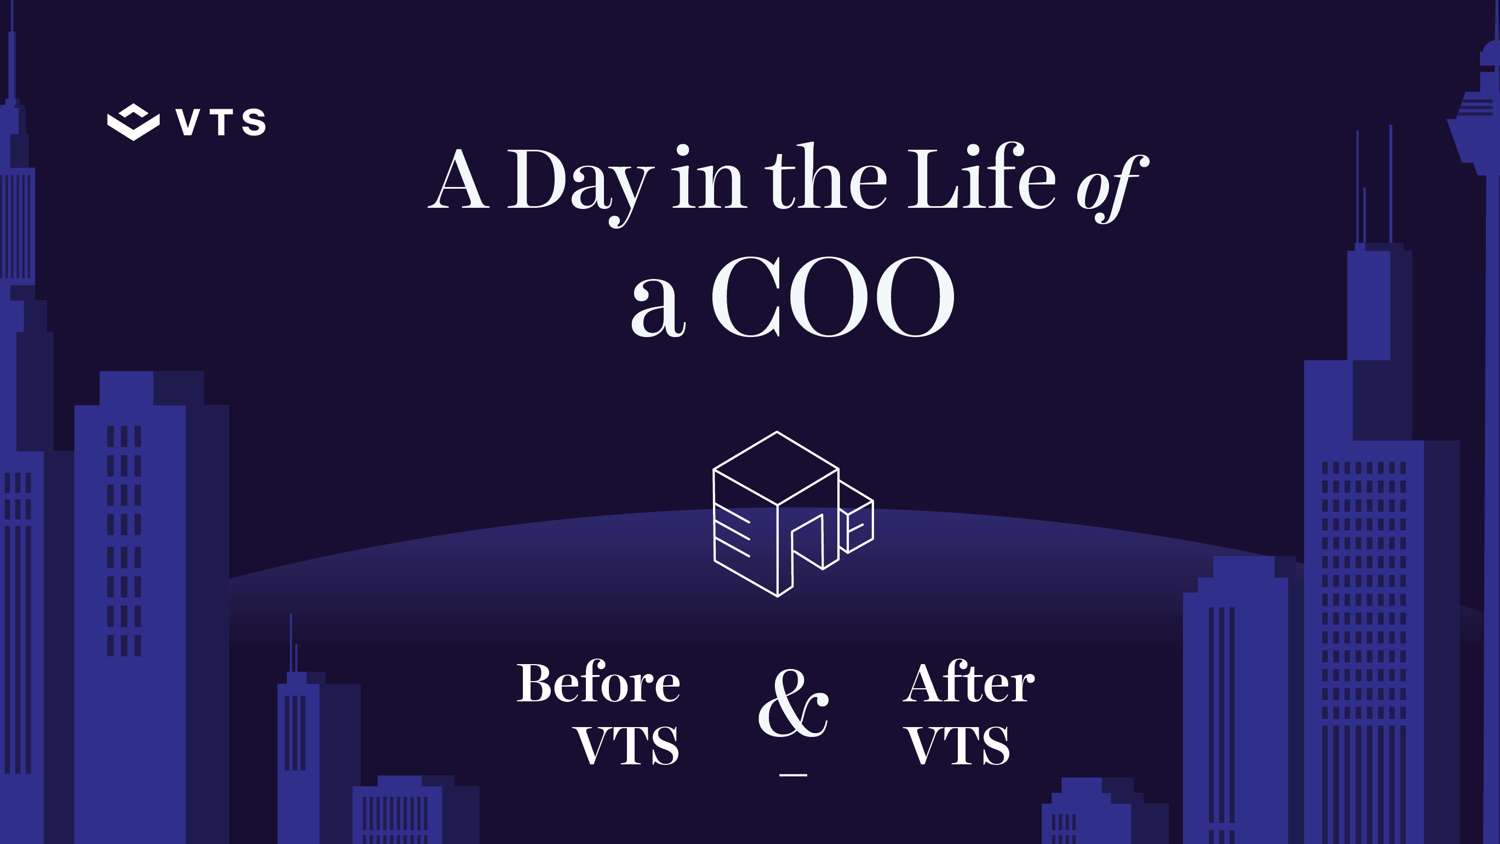 A Day in the Life of a COO Before and After VTS Infographic